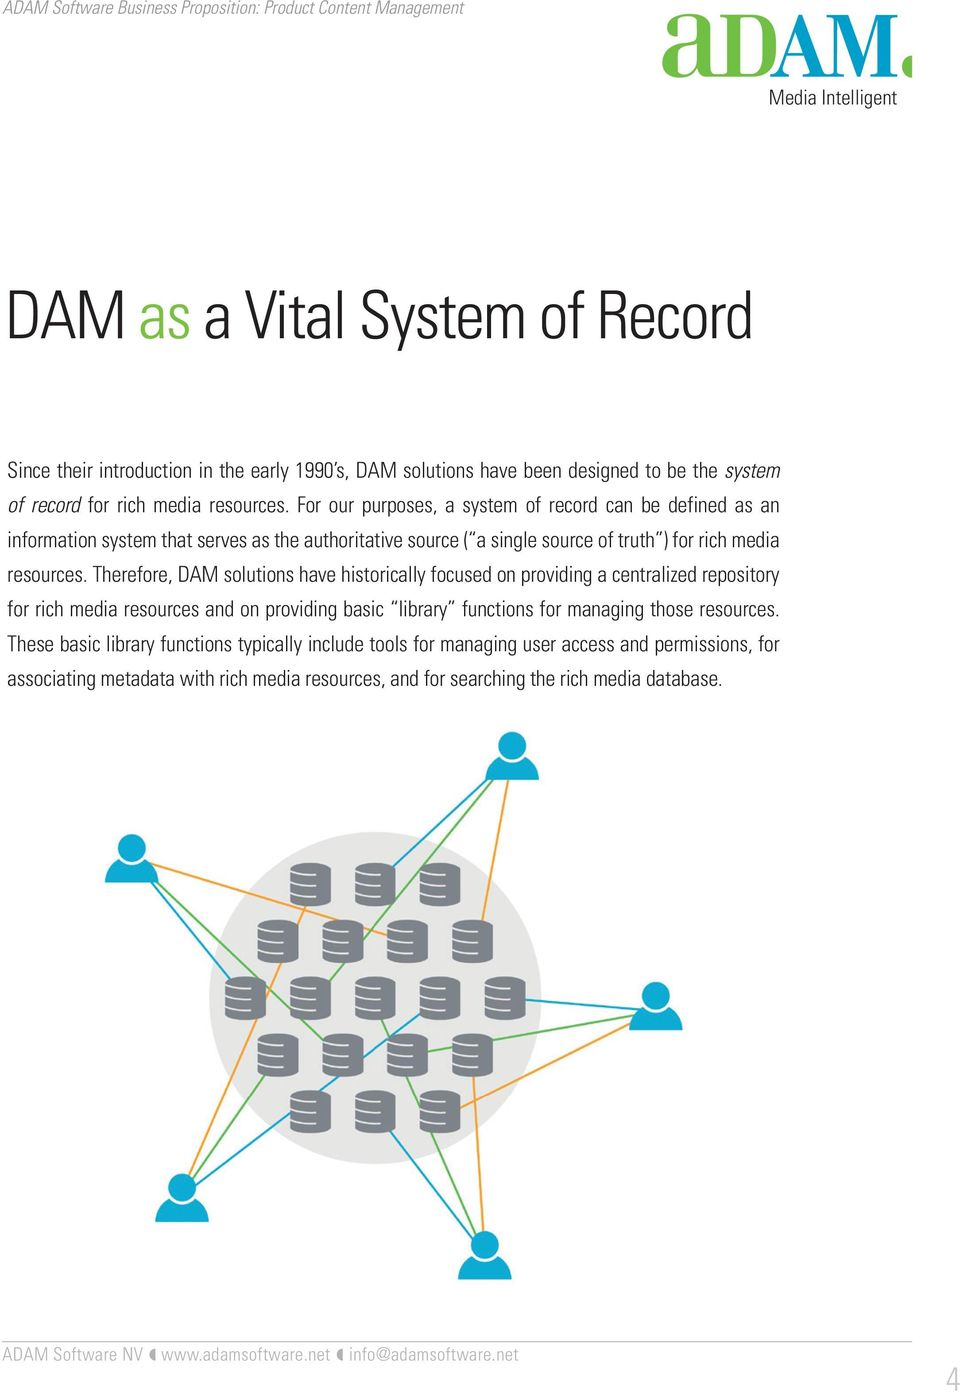 Therefore, DAM solutions have historically focused on providing a centralized repository for rich media resources and on providing basic library functions for managing those